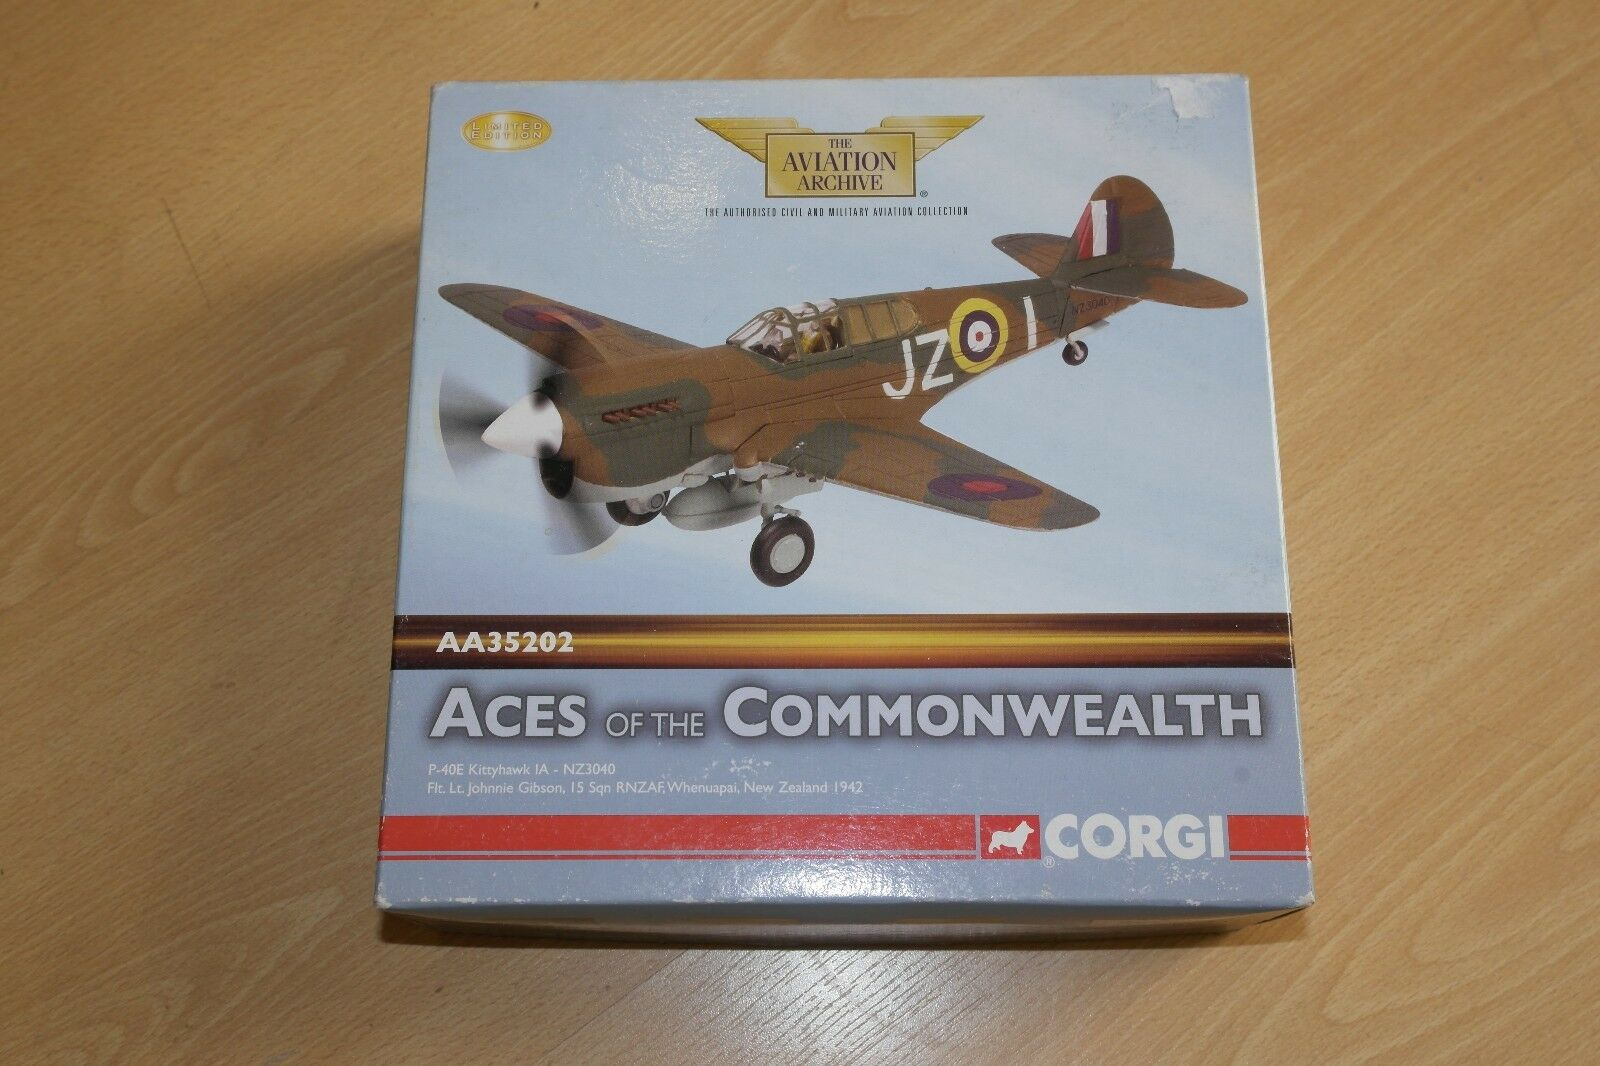 Corgi Aviation 1 72 Aces of the Commonwealth P-40E KITTYHAWK 1 A-NZ3040 NZ 1942